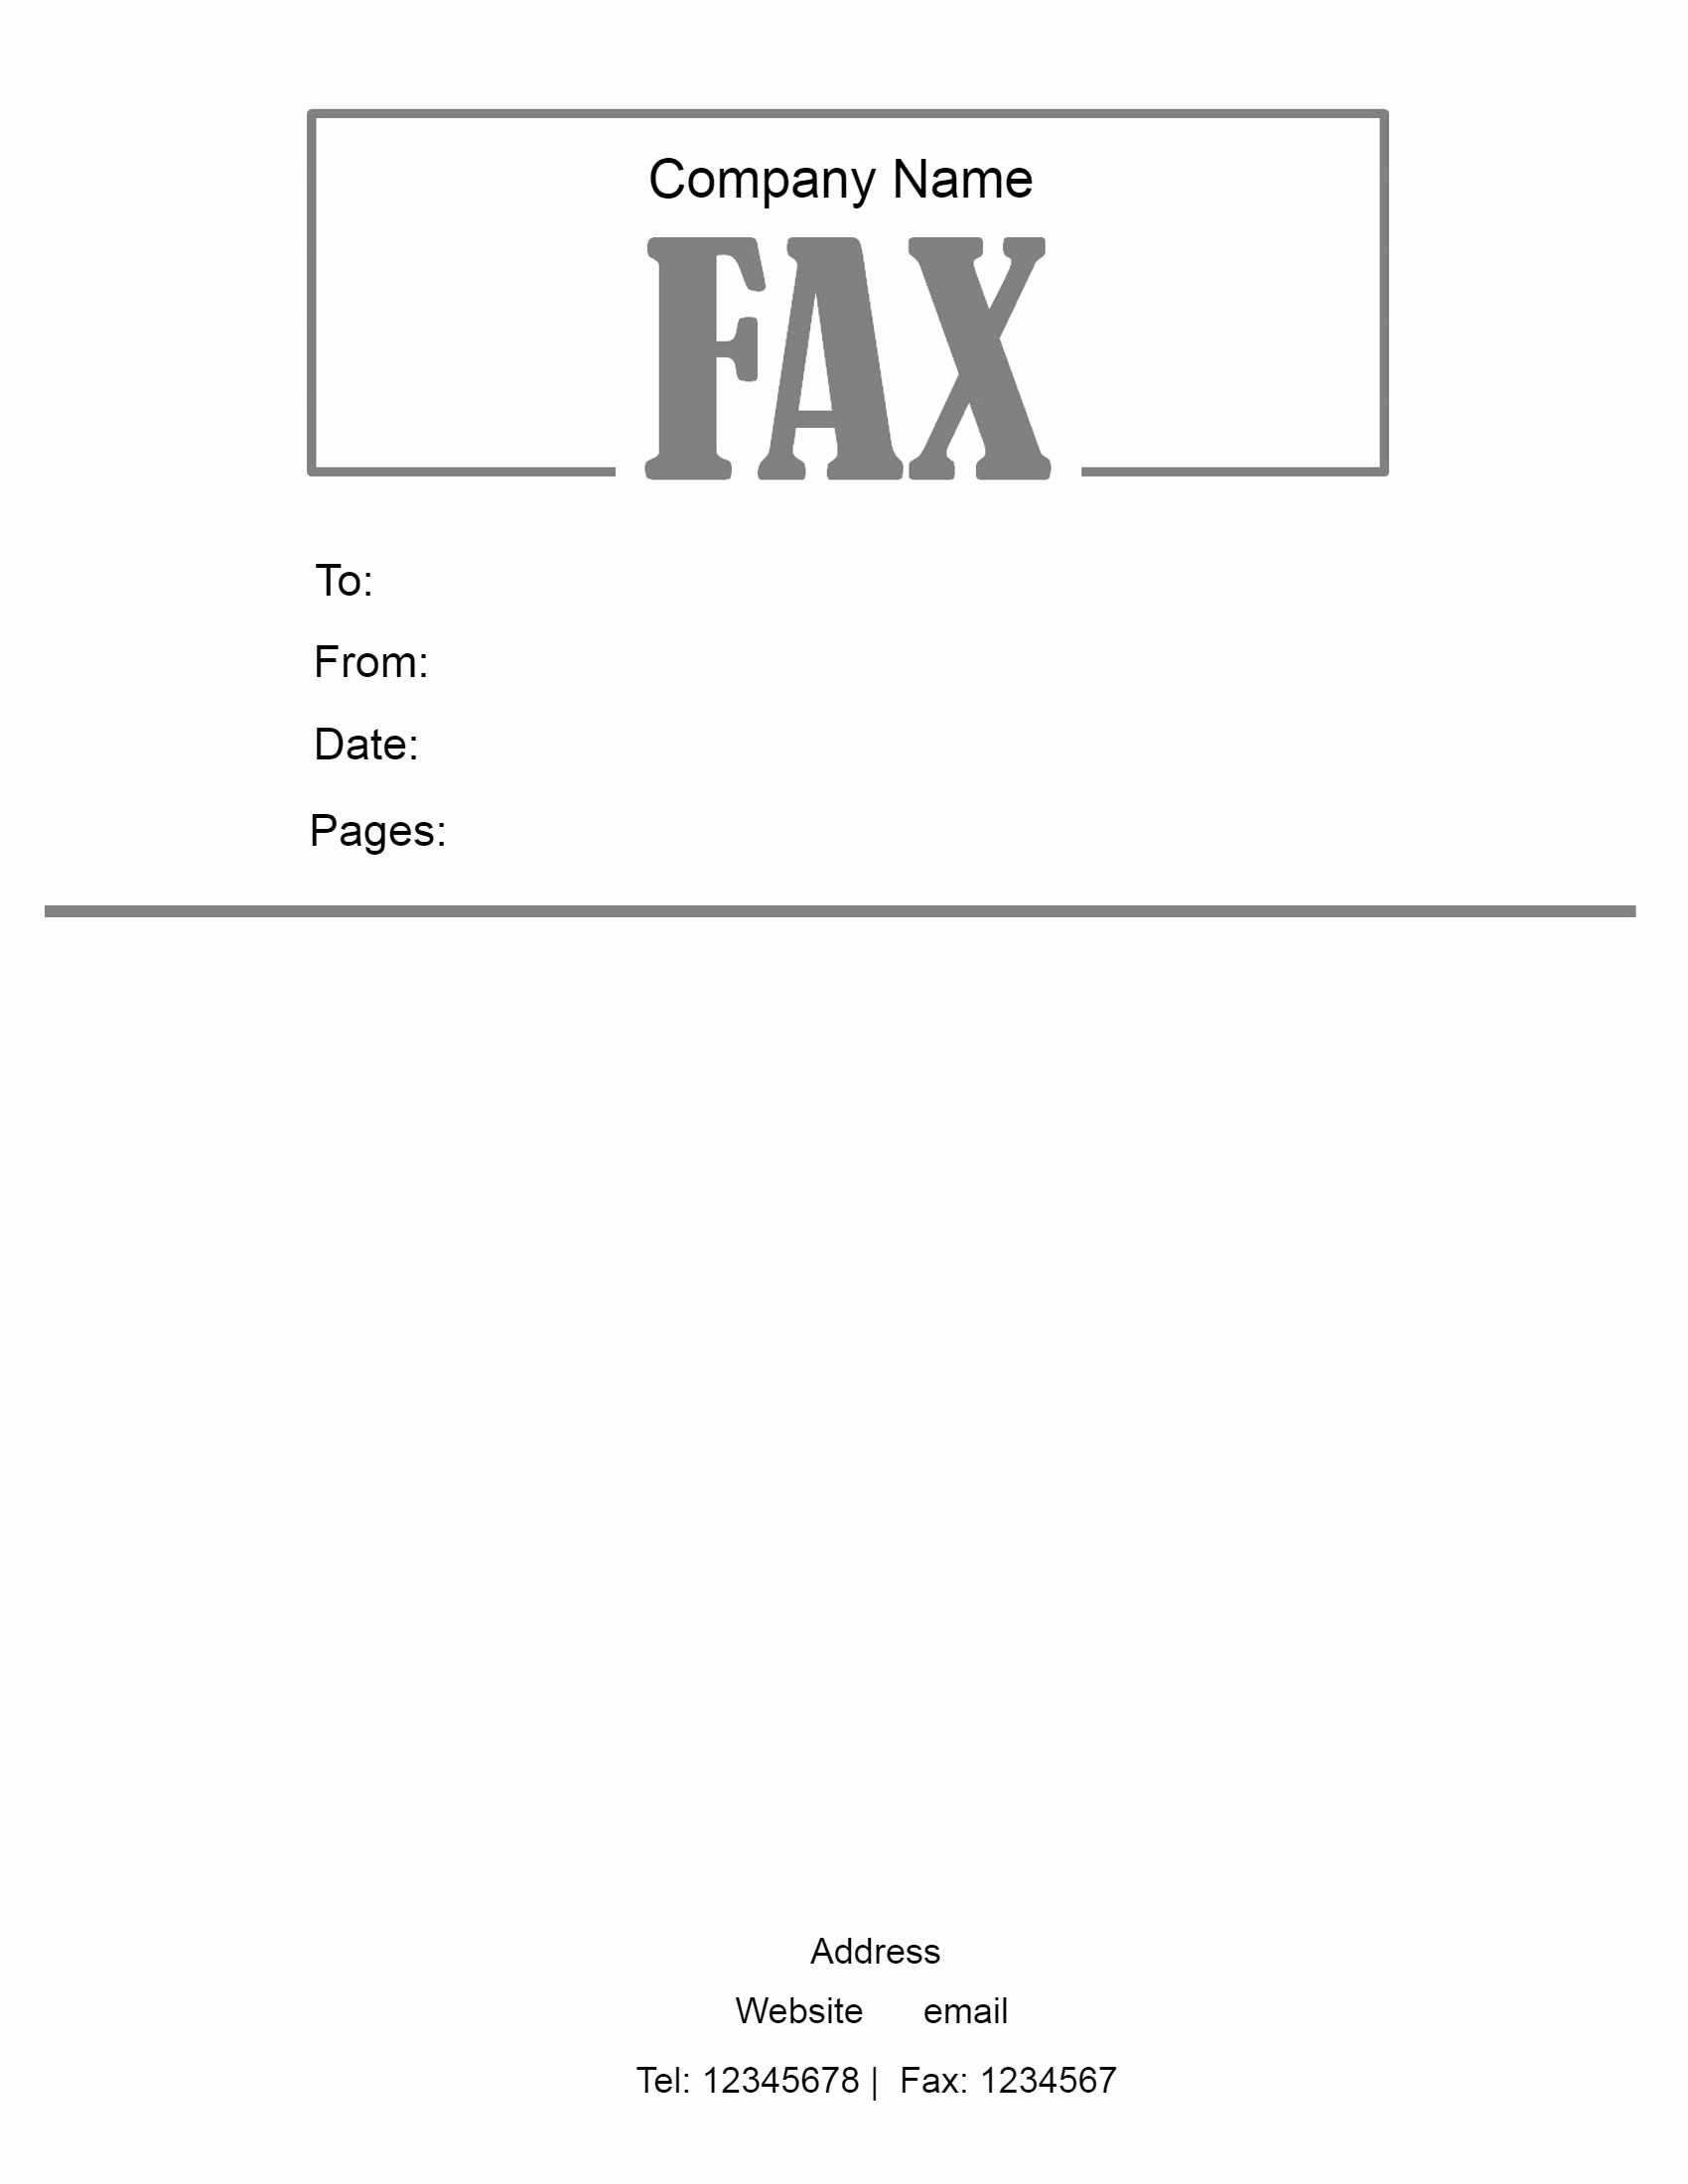 Fax Cover Sheet with Logo Fresh Free Fax Cover Sheet Template